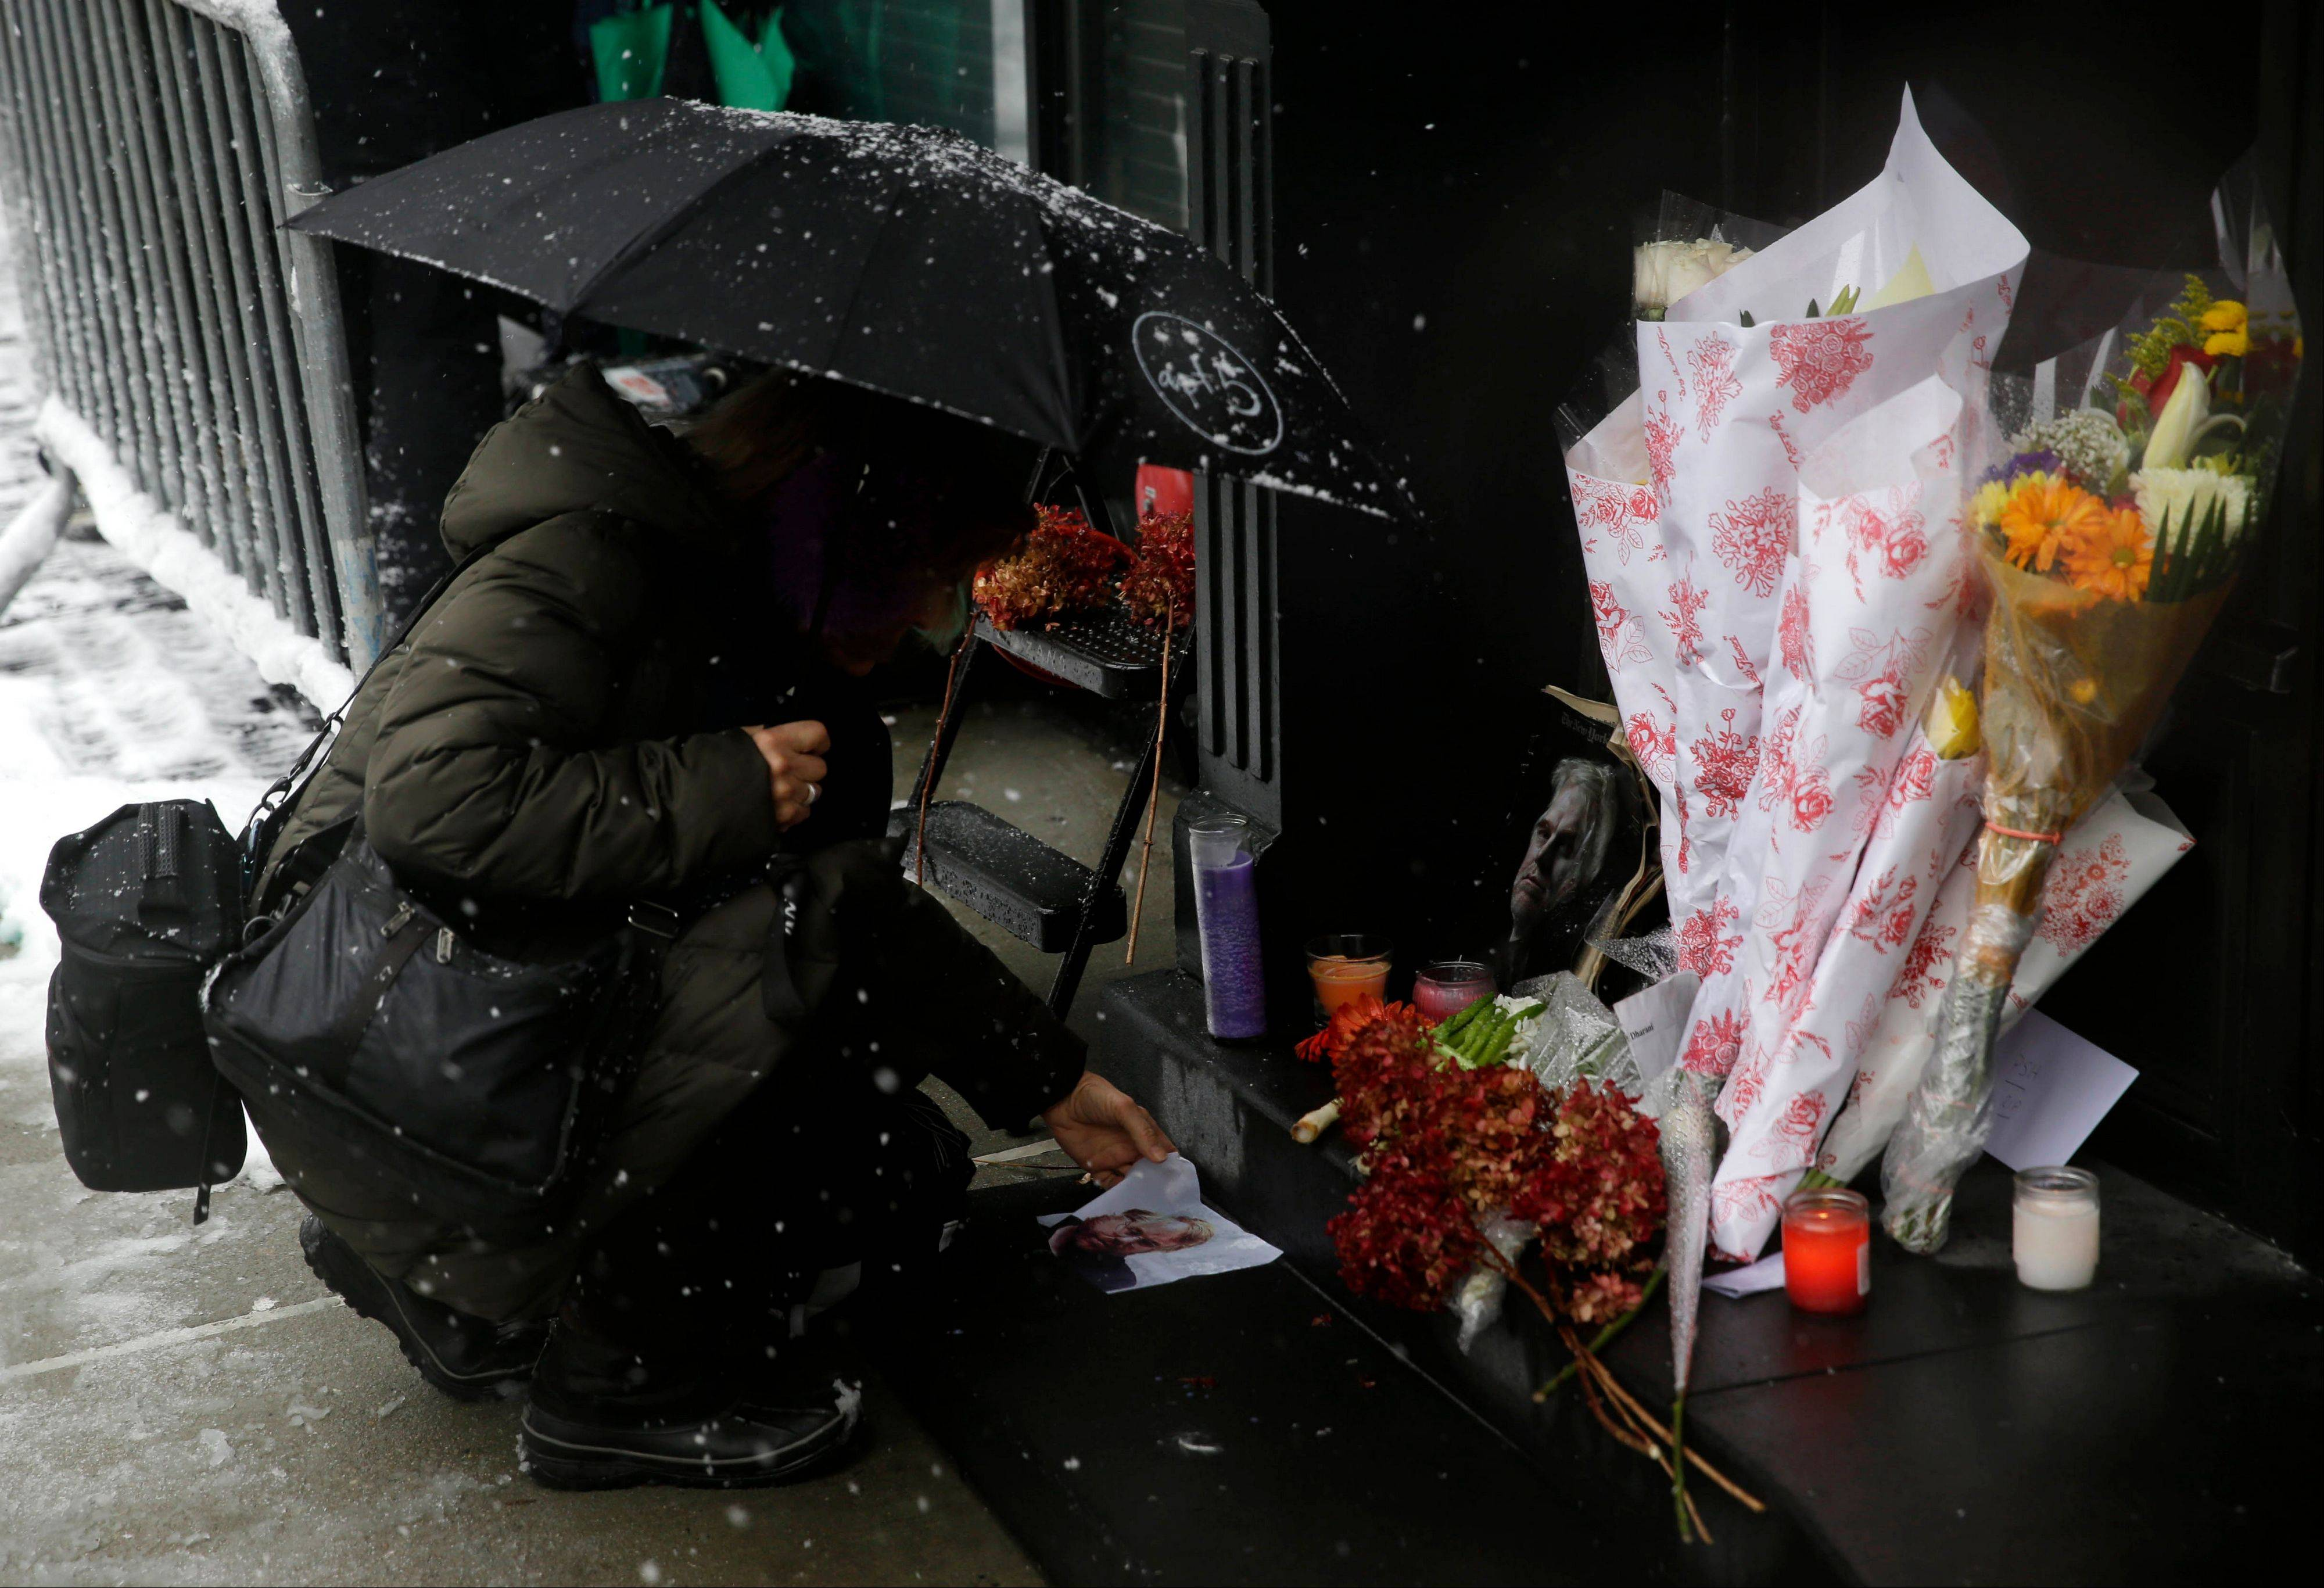 A woman unfolds a picture of Philip Seymour Hoffman at a makeshift memorial in front of the building where his body was found, Monday, Feb. 3, 2014, in New York. Hoffman, 46, was found dead Sunday in his apartment of a suspected drug overdose.